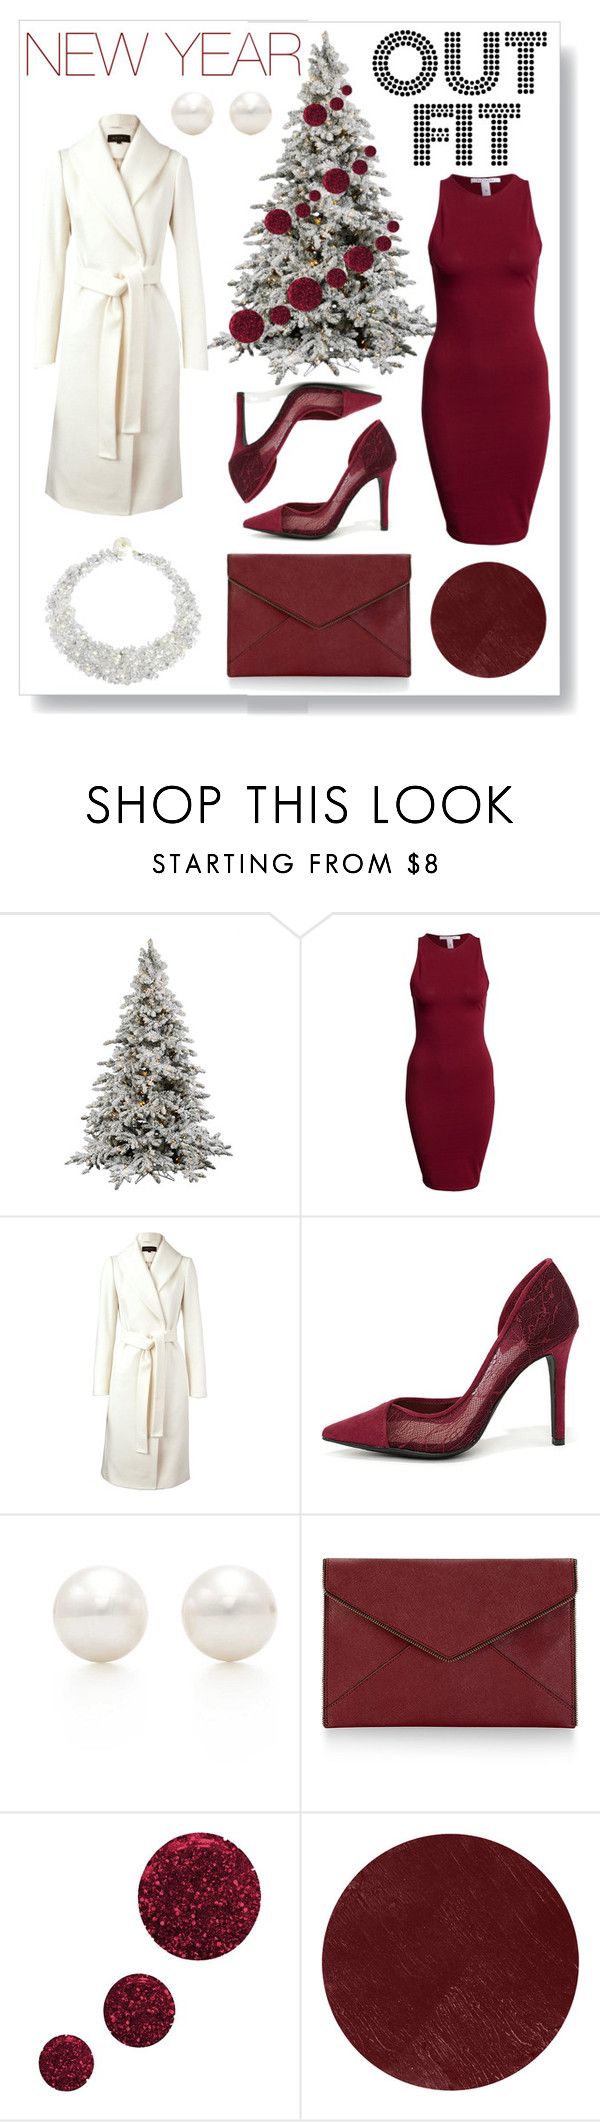 """""""New Year Outfit"""" by by-jwp ❤ liked on Polyvore featuring NLY Trend, Reiss, Jessica Simpson, Tiffany & Co., Rebecca Minkoff, Topshop, Burberry, AeraVida, Happiness and party_all_night"""